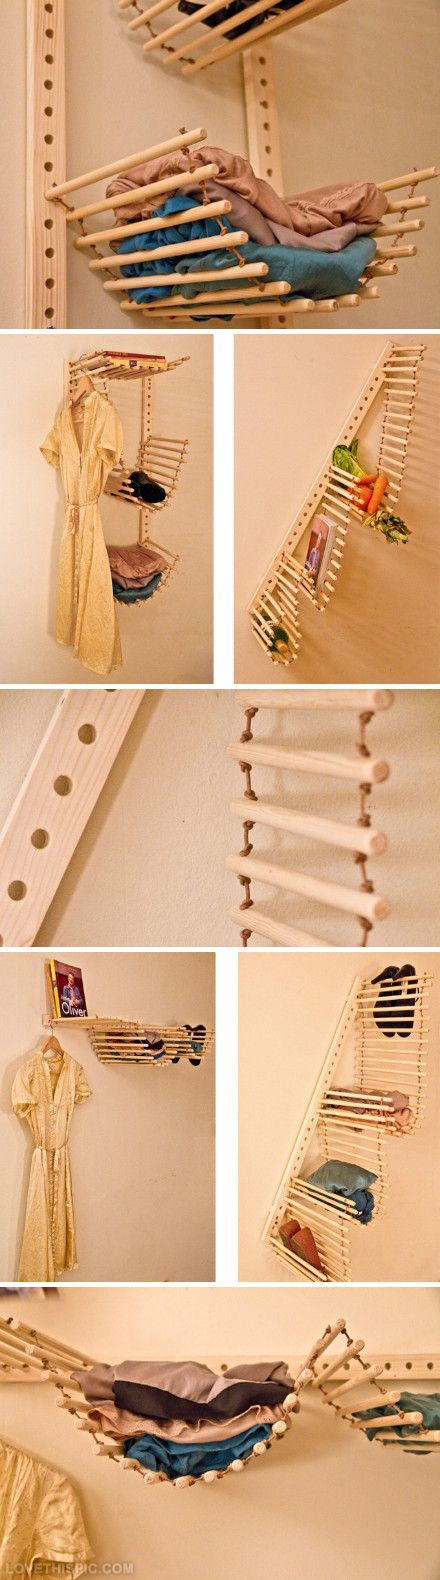 DIY room organization.  Very clever!  Would be great in a kids room or laundry room.  Paint or stain the dowels and you have a whole different look!  I can even see a real heavy duty version with some cushions, used as seating - in doors or out!  How cool would that be?  ;)